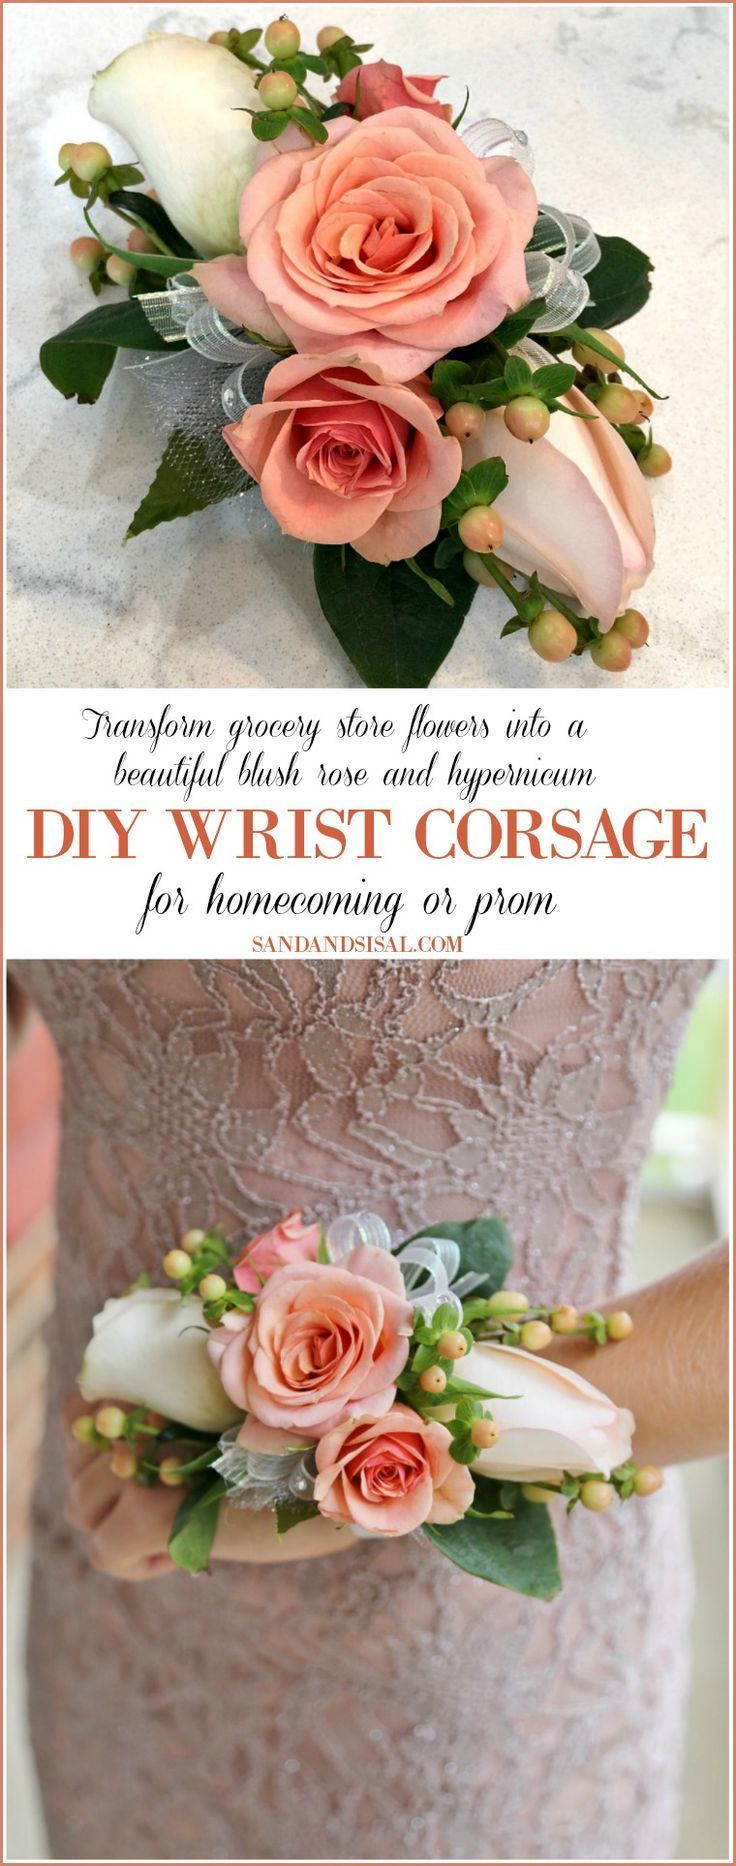 DIY Wrist Corsage for Homecoming or Prom - Sand and Sisal